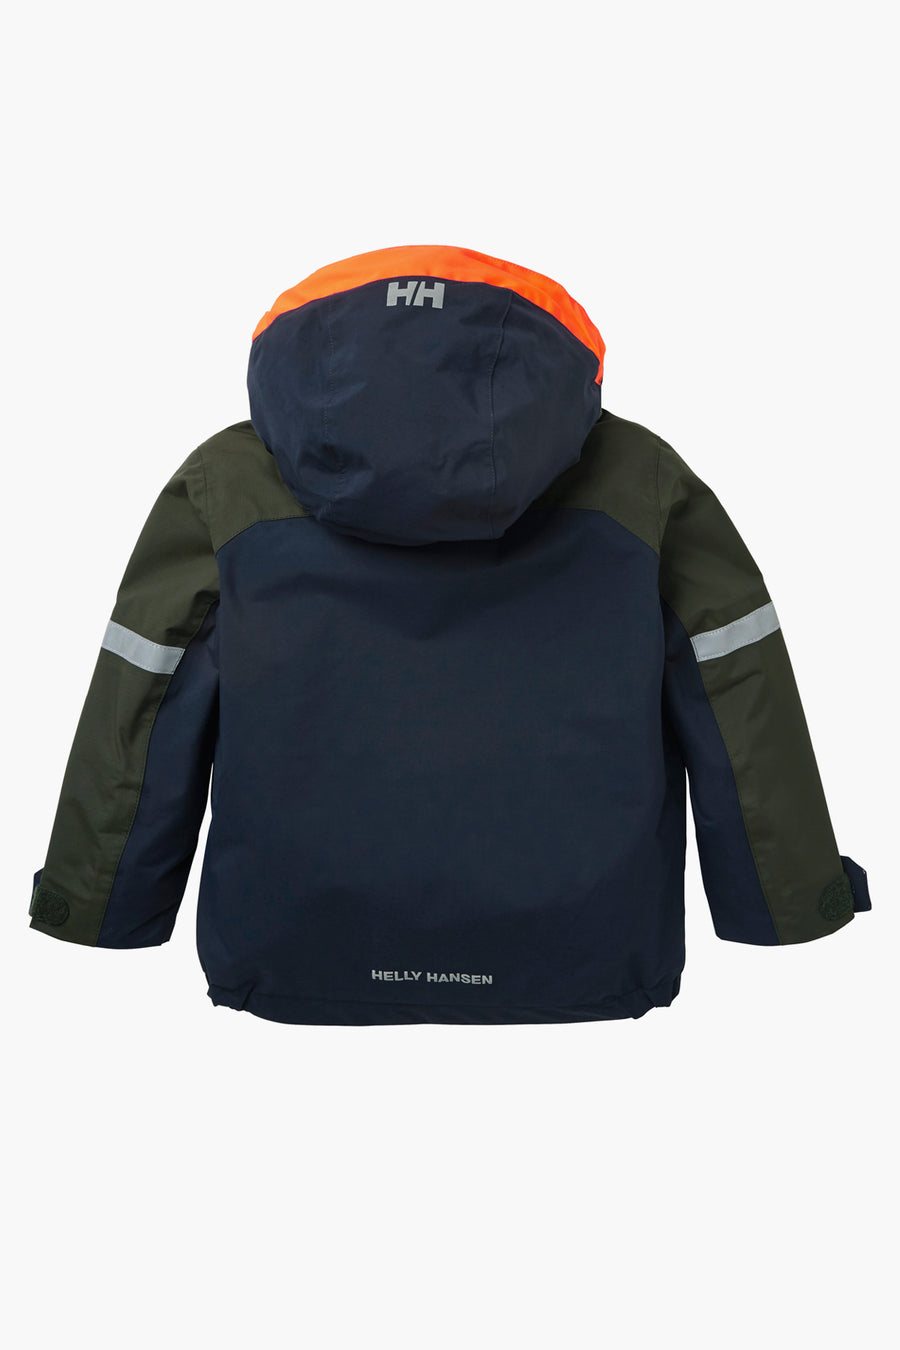 Helly Hansen Kids Jacket Legend Navy